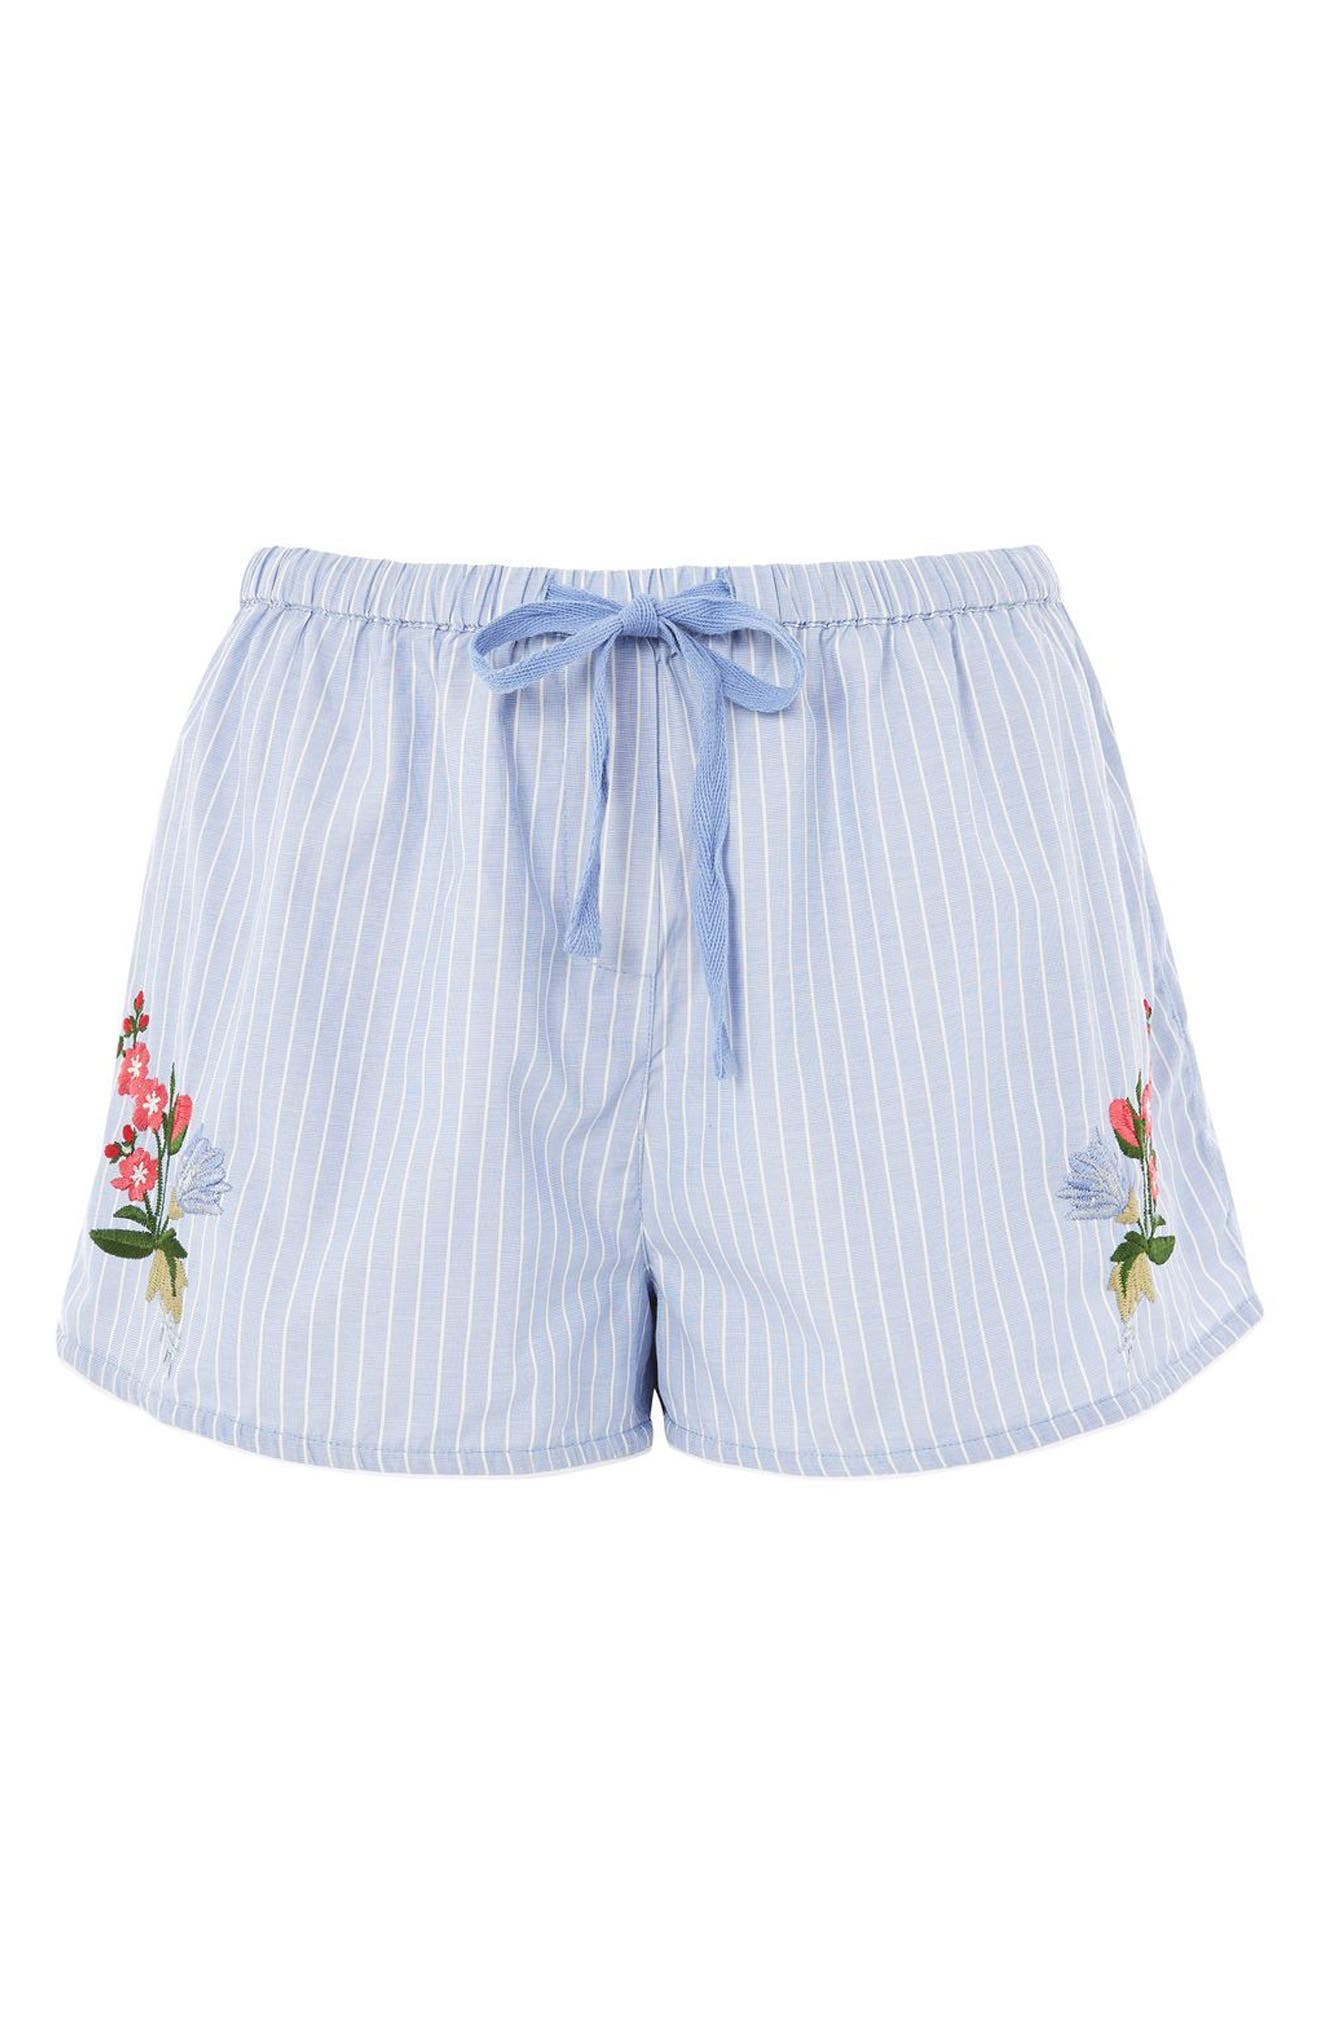 Embroidered Lounge Shorts,                             Alternate thumbnail 3, color,